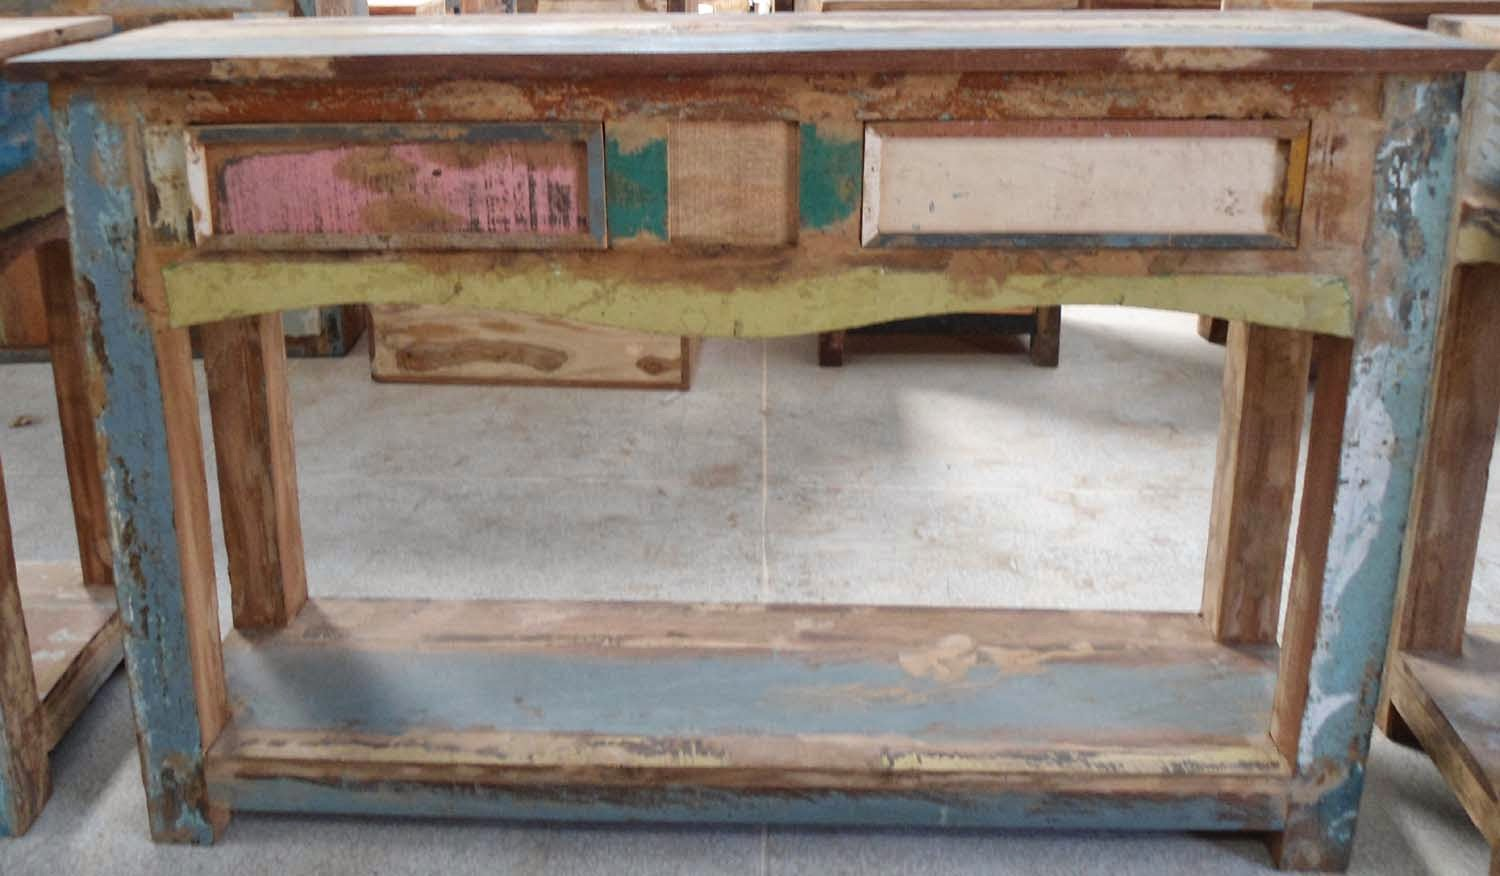 Superb img of Indian Furniture: Recycle Wood Furniture From Jodhpur. with #664534 color and 1500x876 pixels